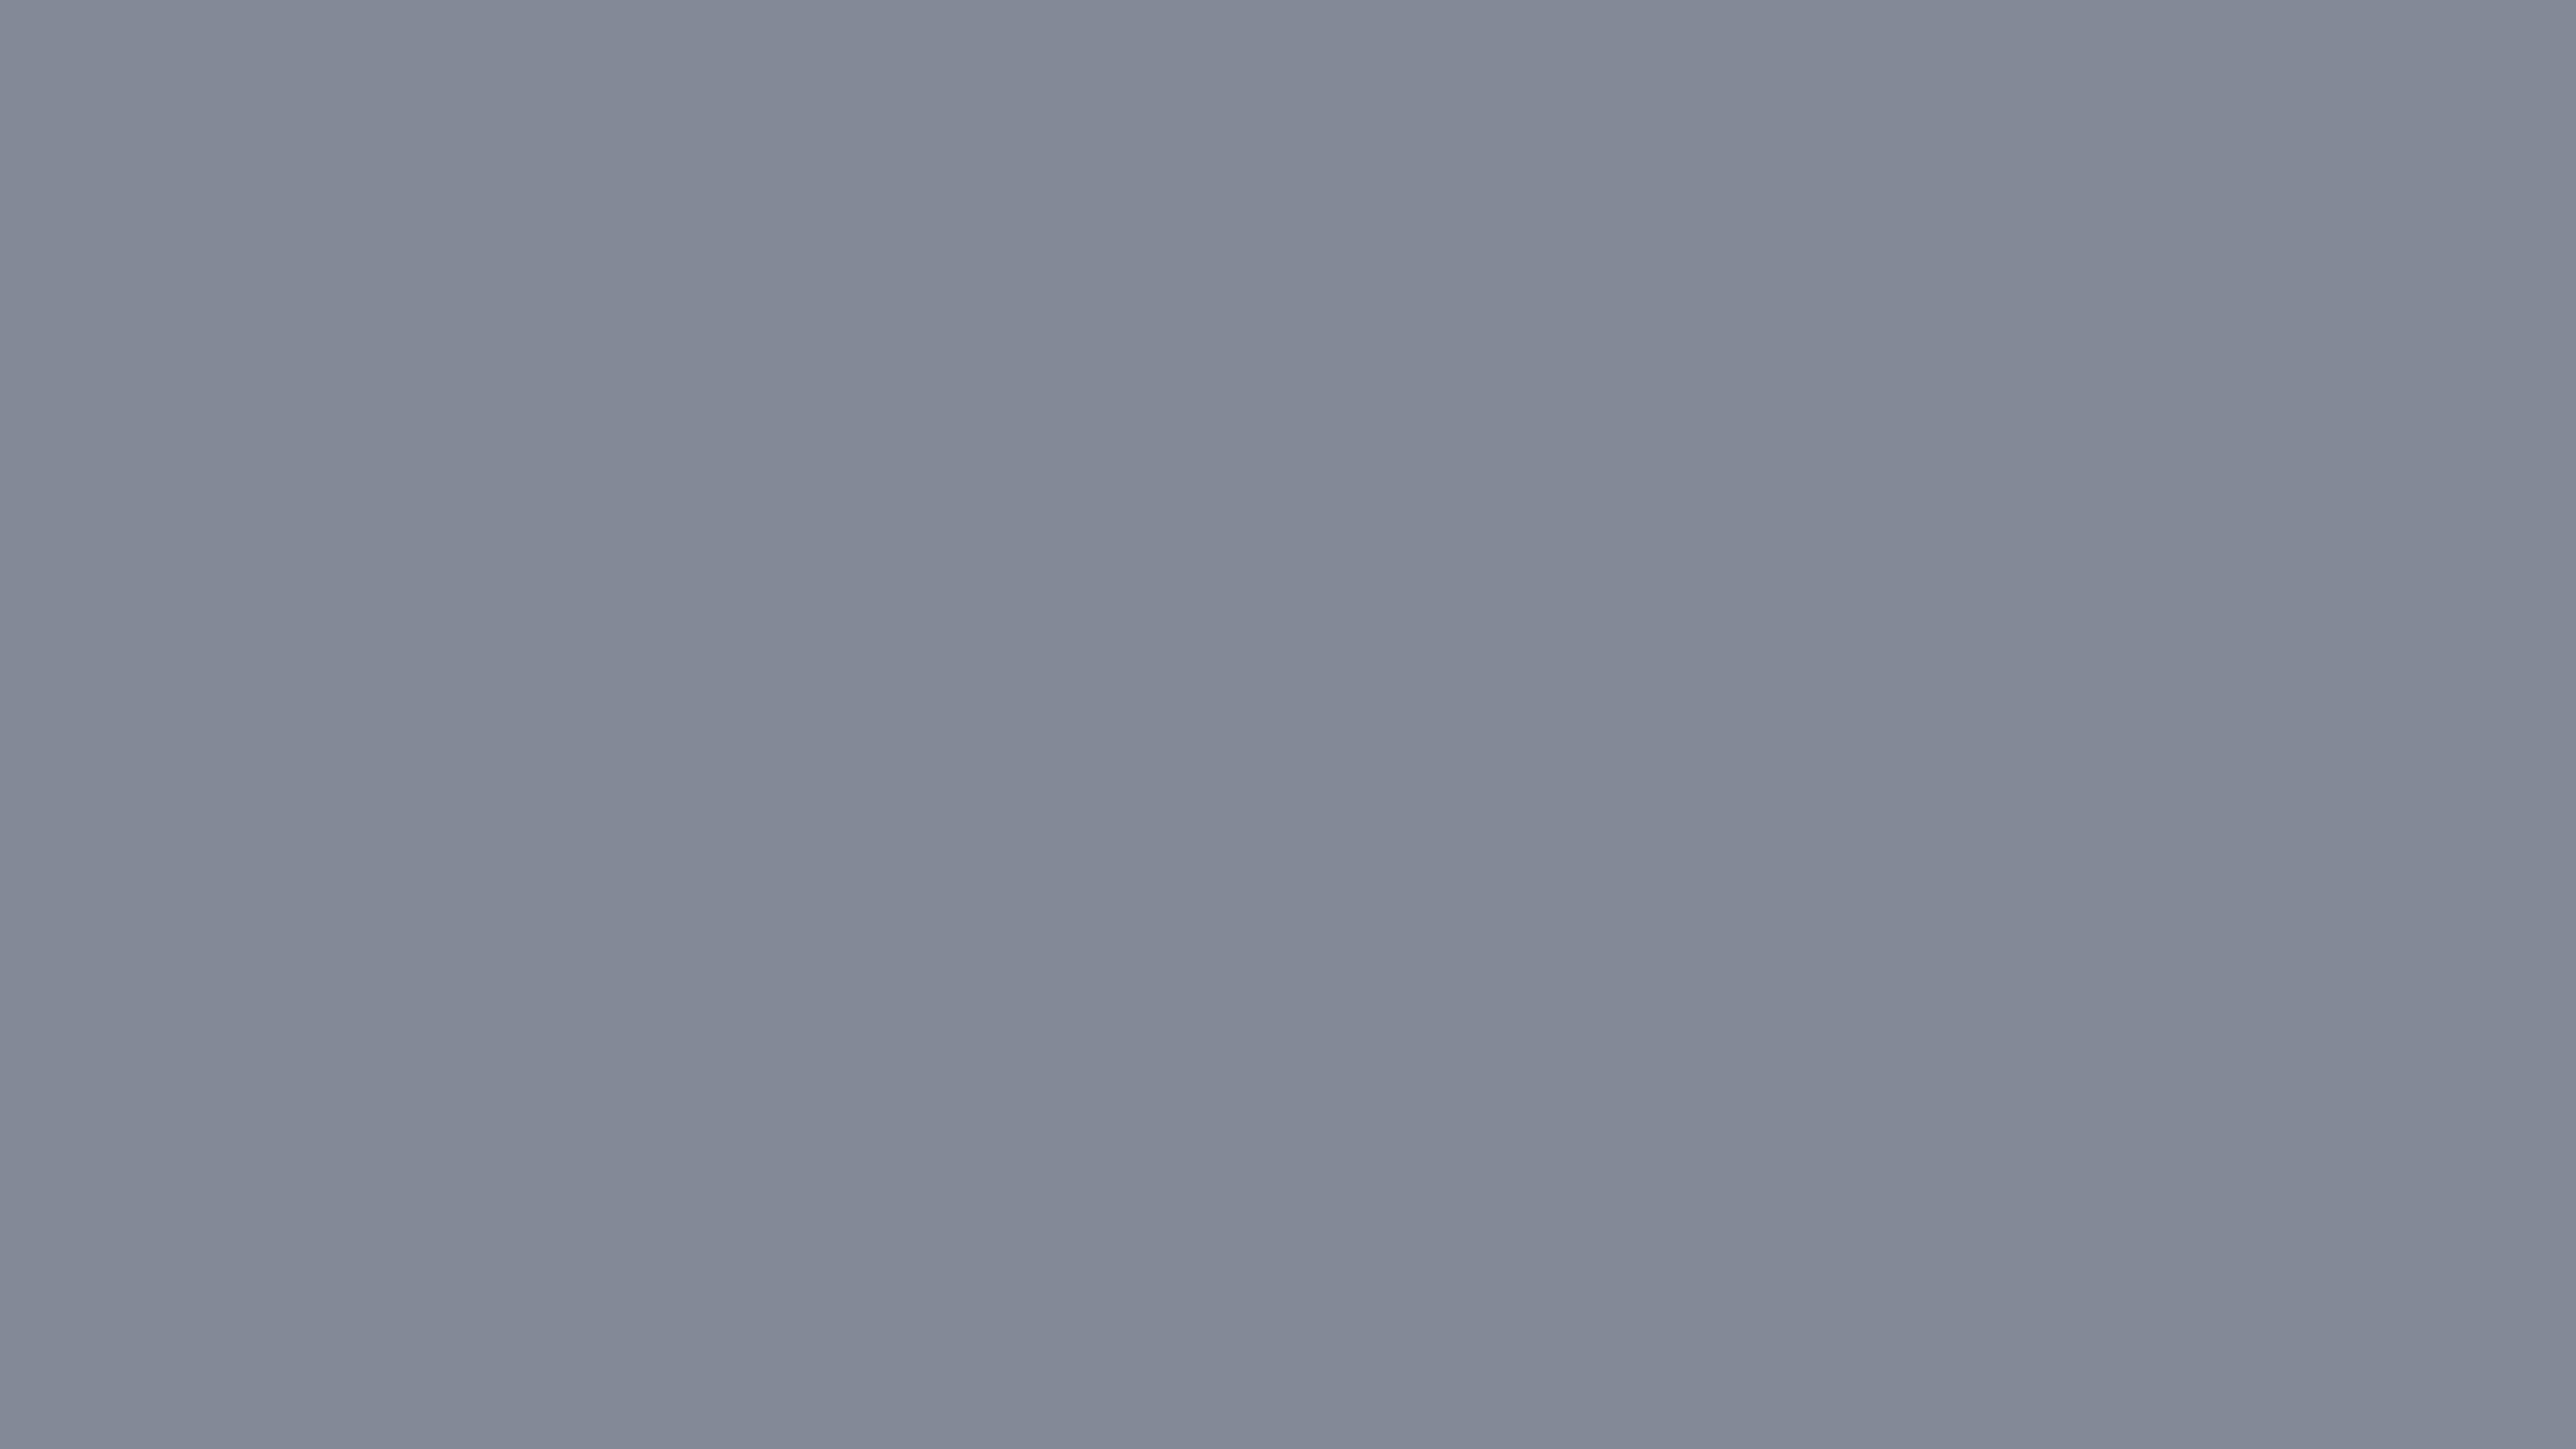 Roman Silver Solid Color Background Wallpaper 5120x2880